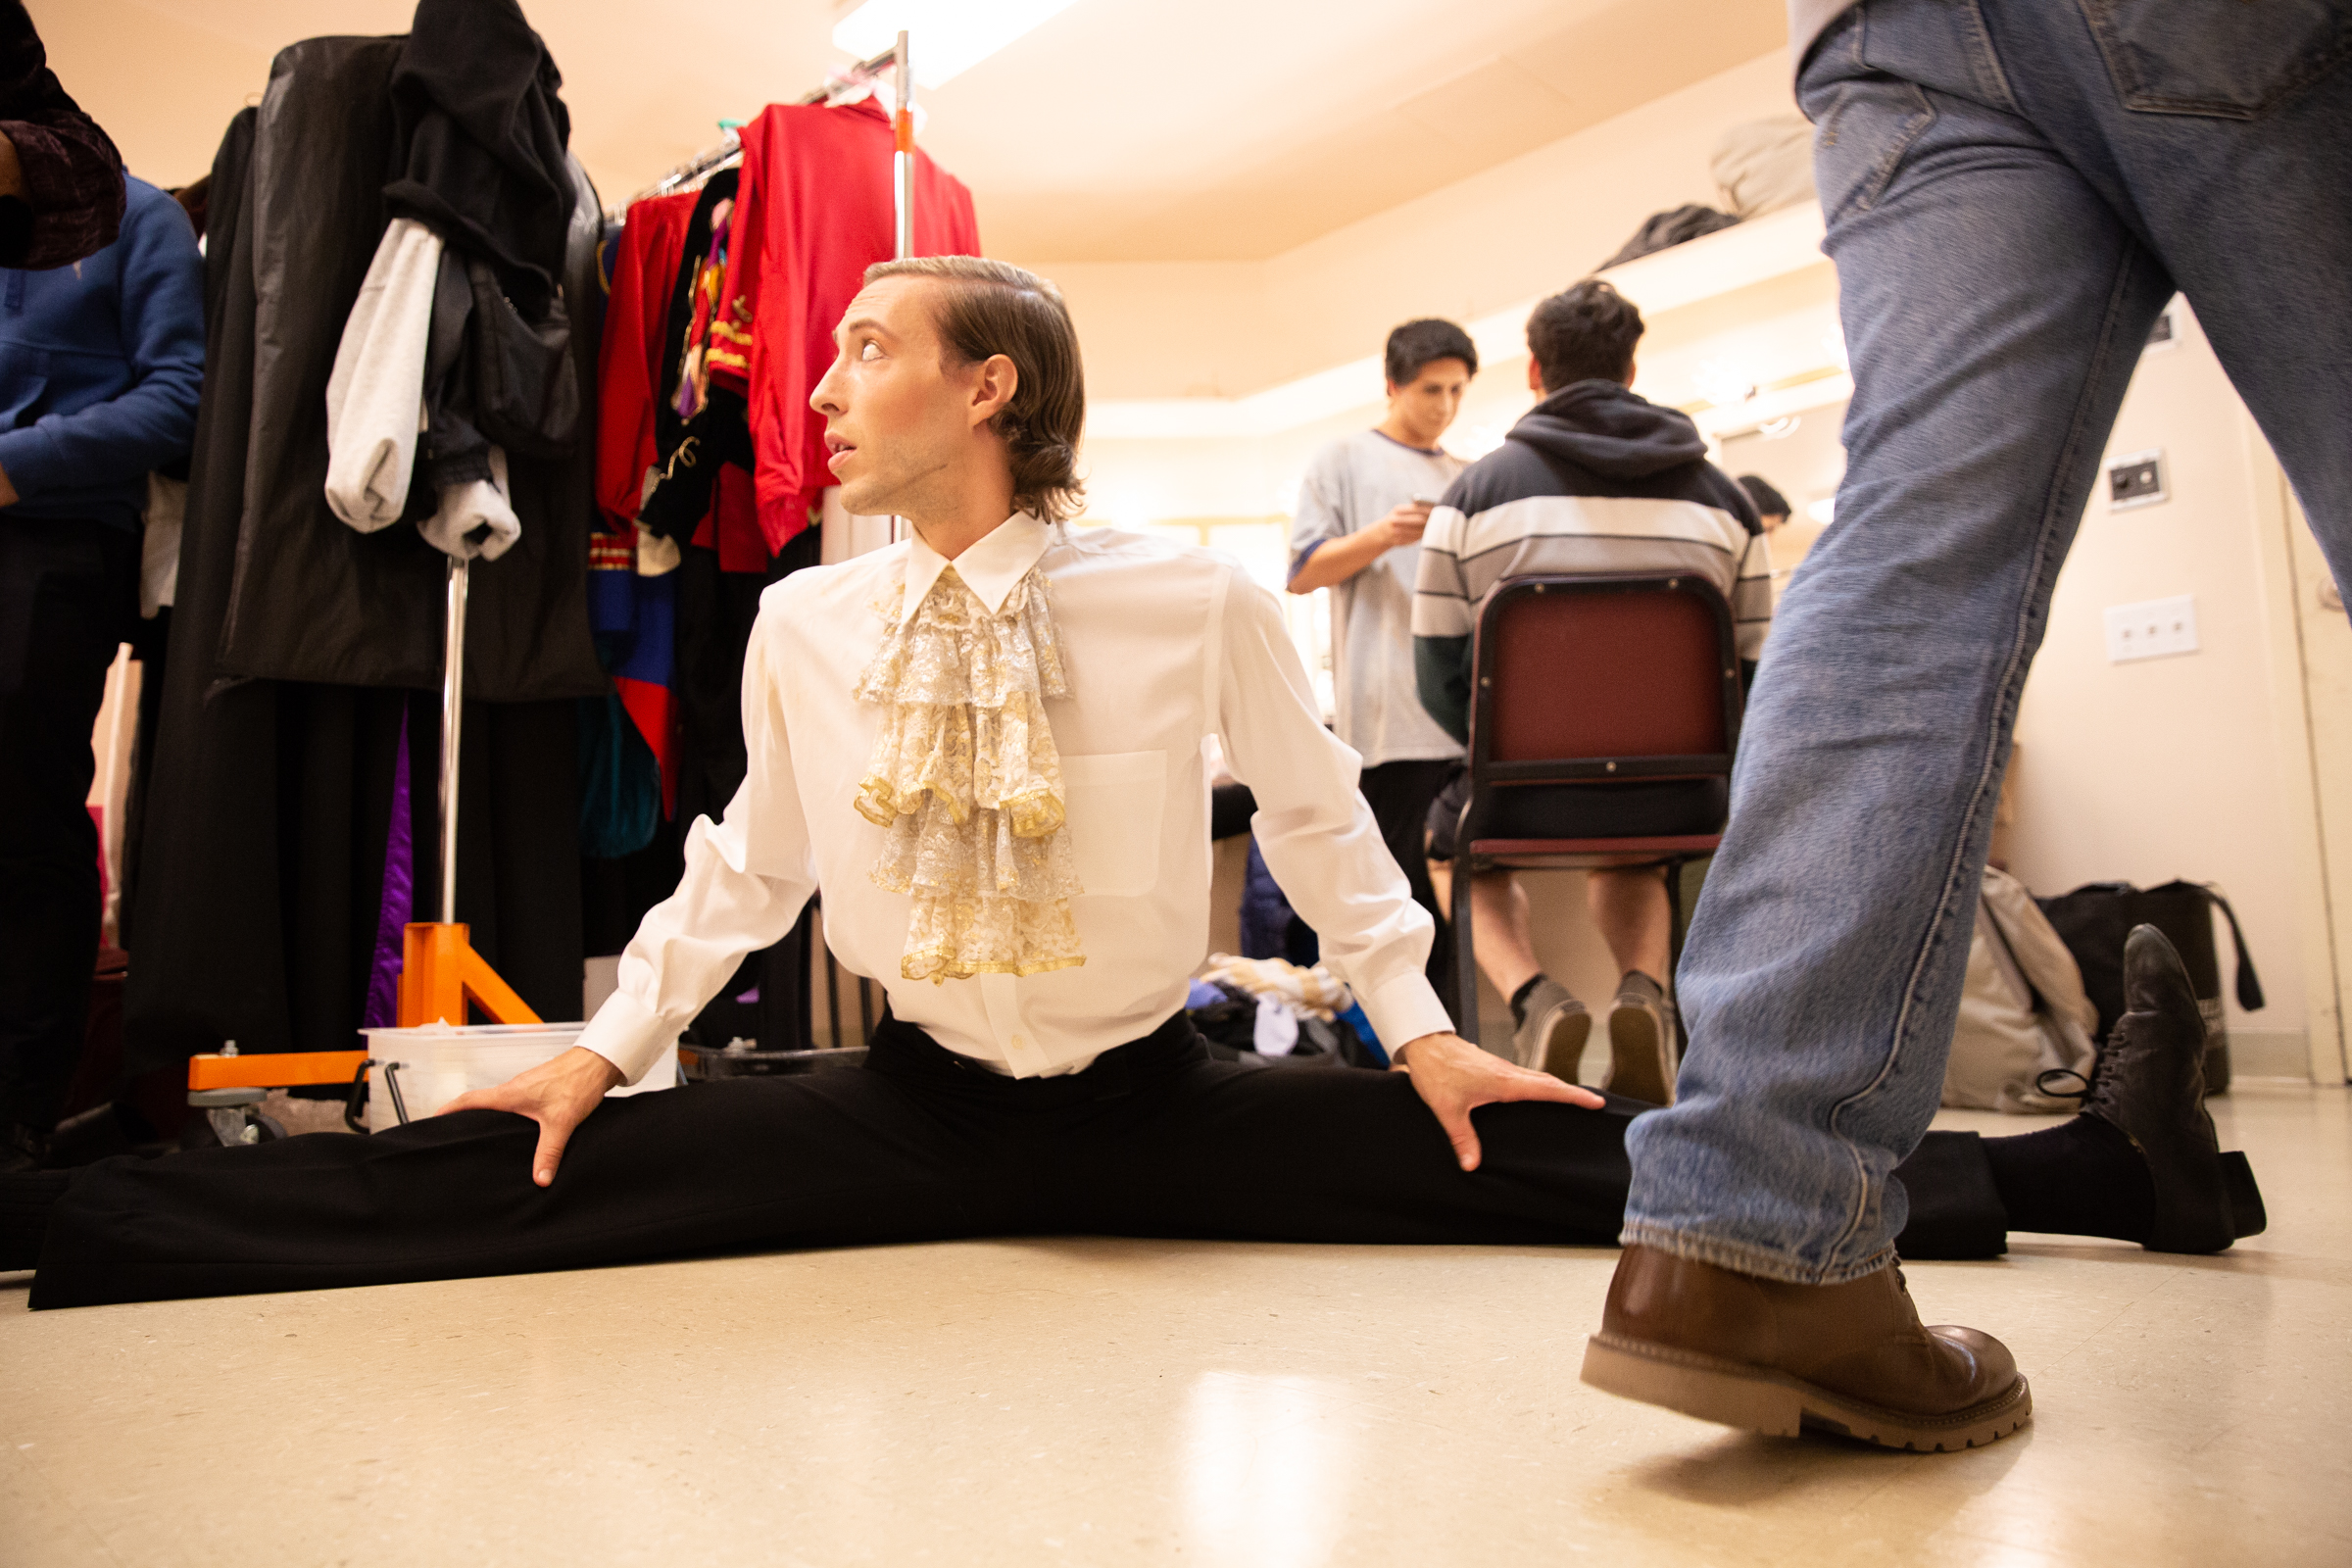 """Joe LaChance, who plays the Snow King, stretches in the men's dressing room backstage before Western Ballet's production of """"The Nutcracker"""" at the Mountain View Center for the Performing Arts on Dec. 2, 2018."""